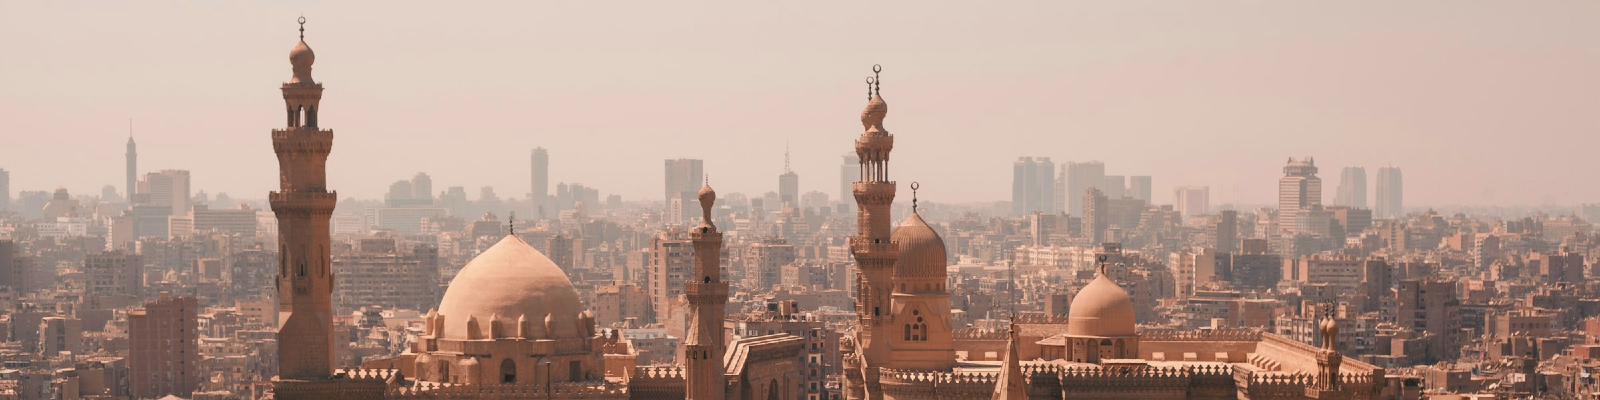 Cityscapes in Cairo